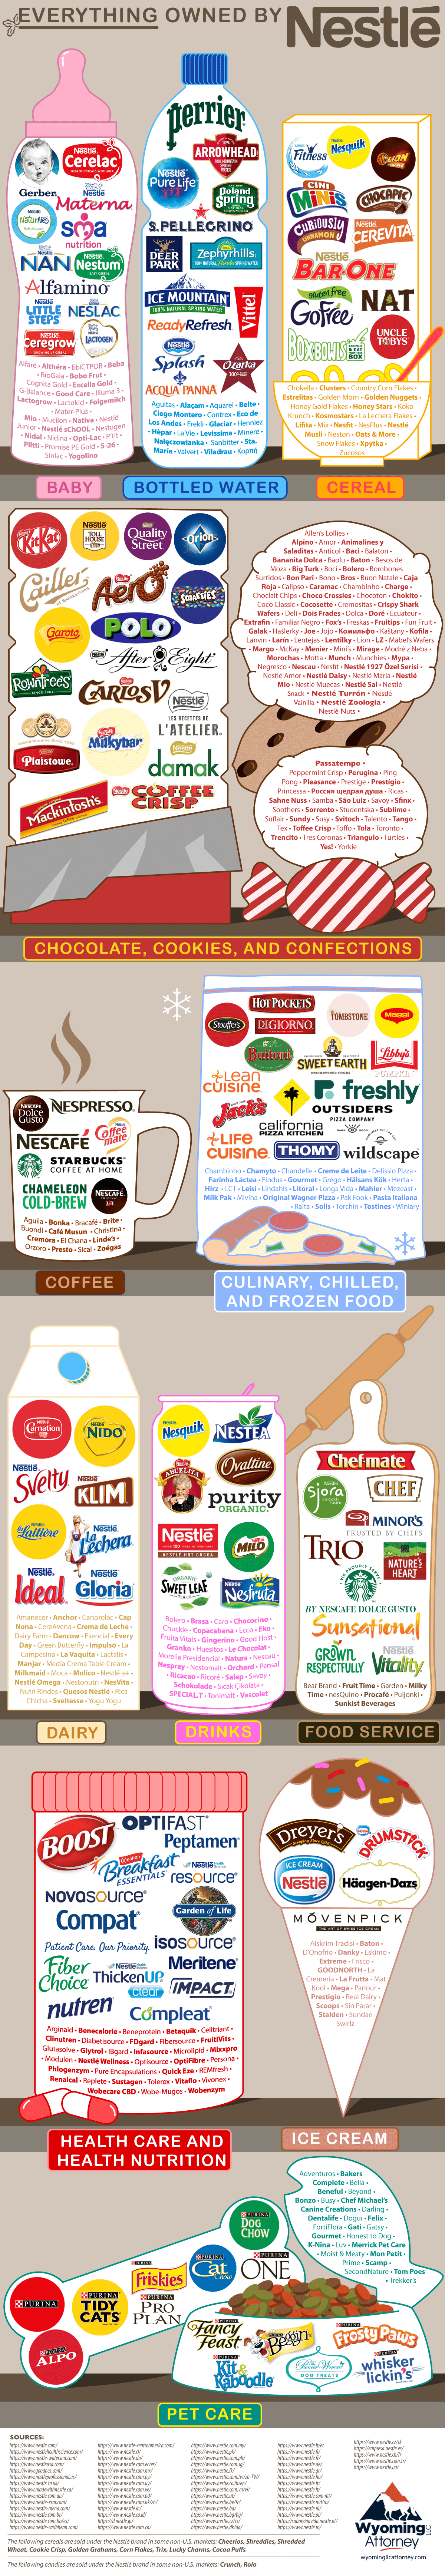 Everything Owned by Nestle - Wyoming LLC Attorney Asset Protection - Infographic